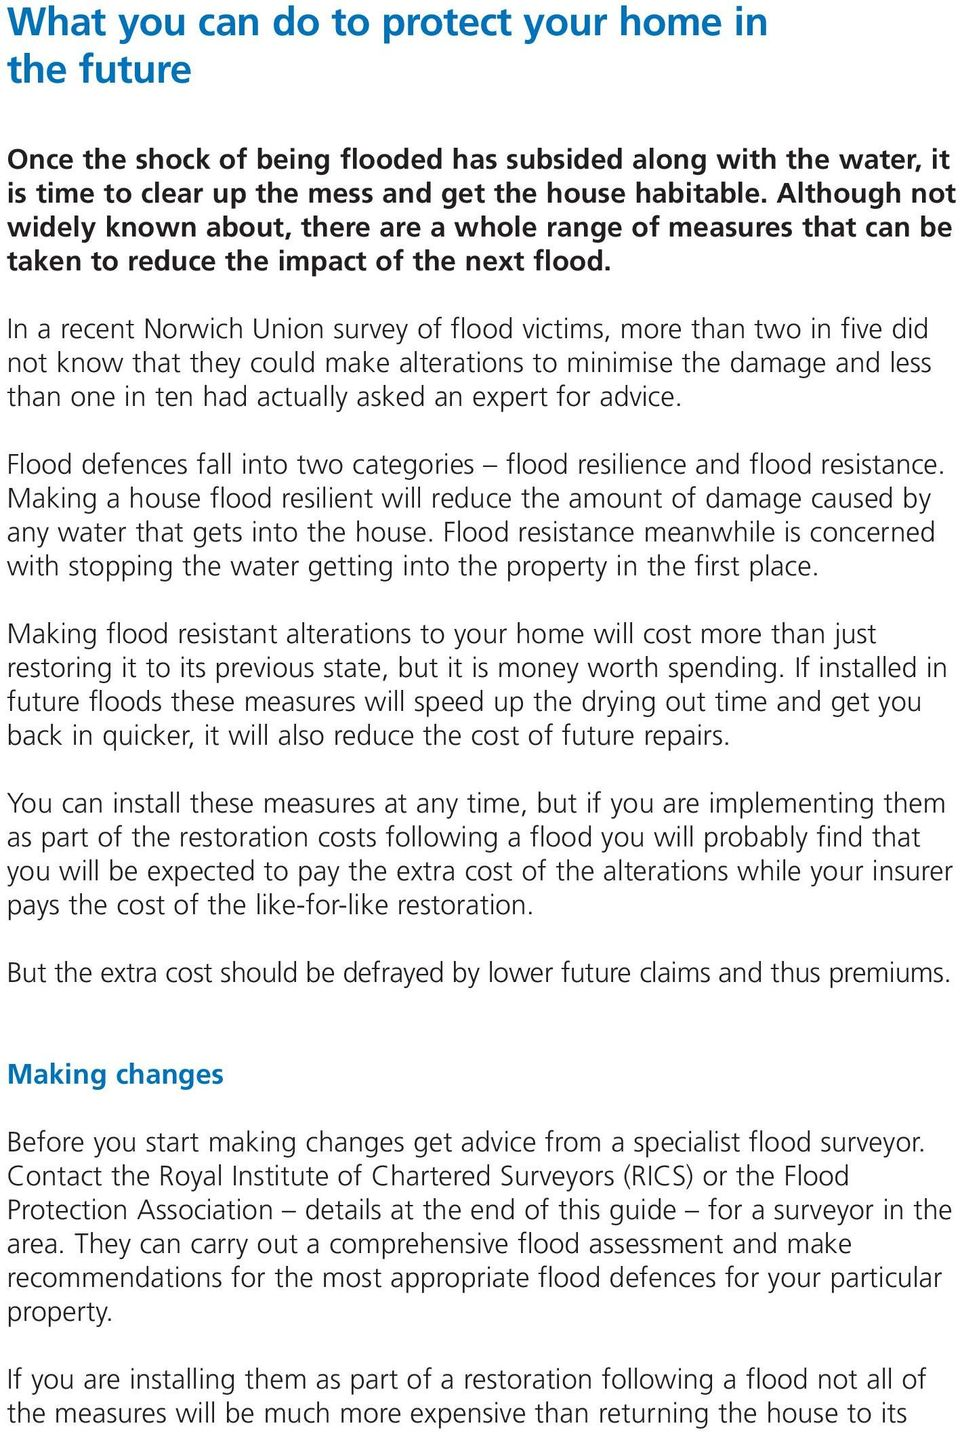 In a recent Norwich Union survey of flood victims, more than two in five did not know that they could make alterations to minimise the damage and less than one in ten had actually asked an expert for